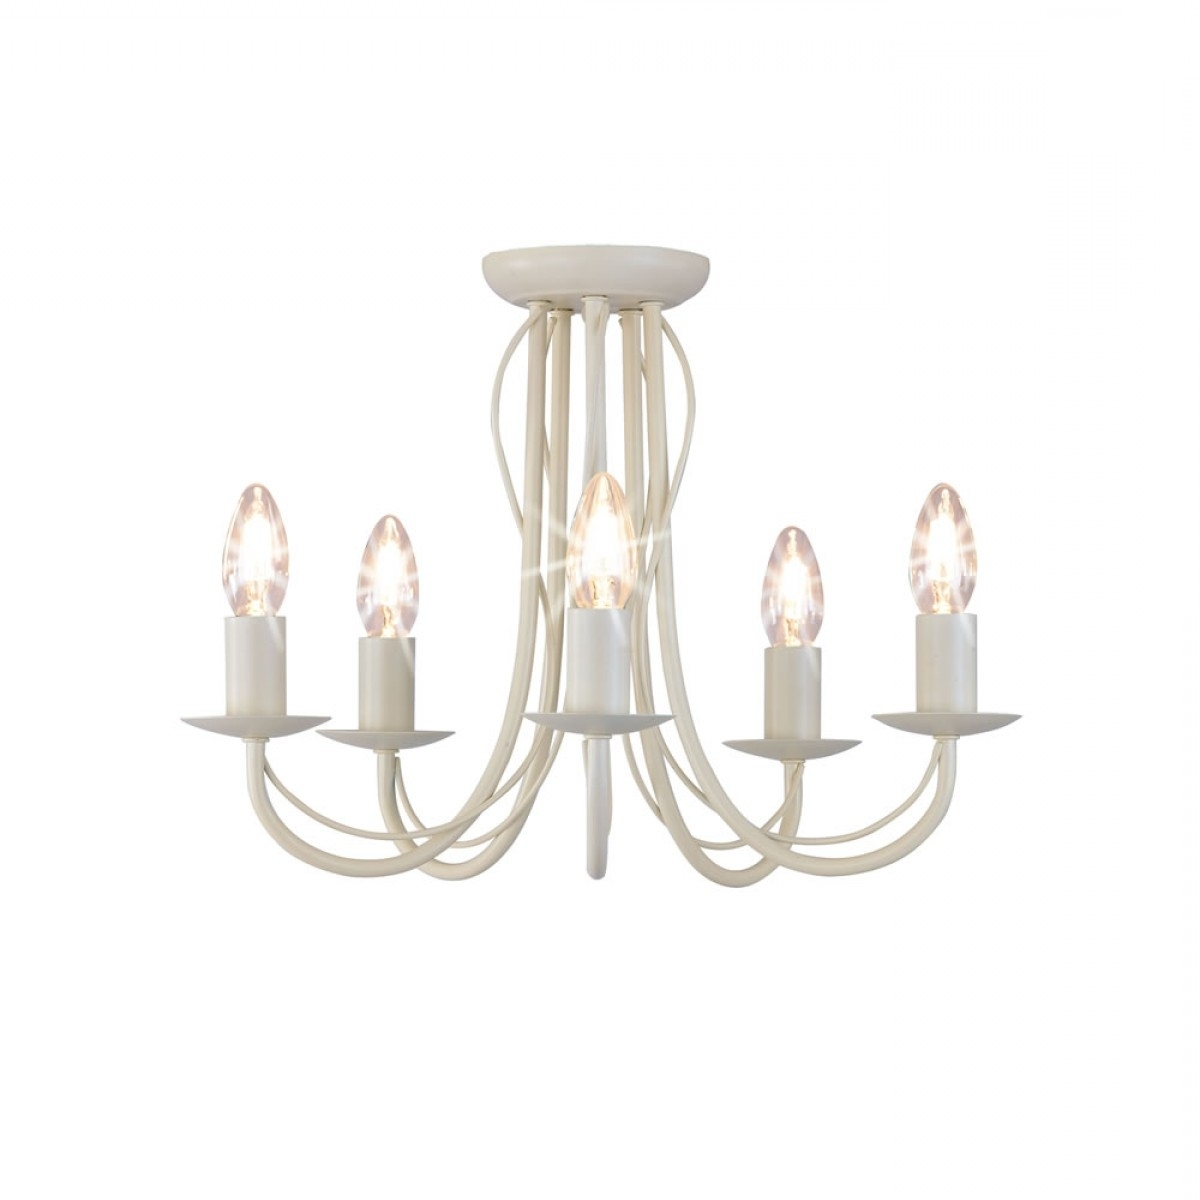 Arm Chandelier Metal Ceiling Light Fitting Cream Within Newest Cream Chandelier Lights (View 1 of 15)